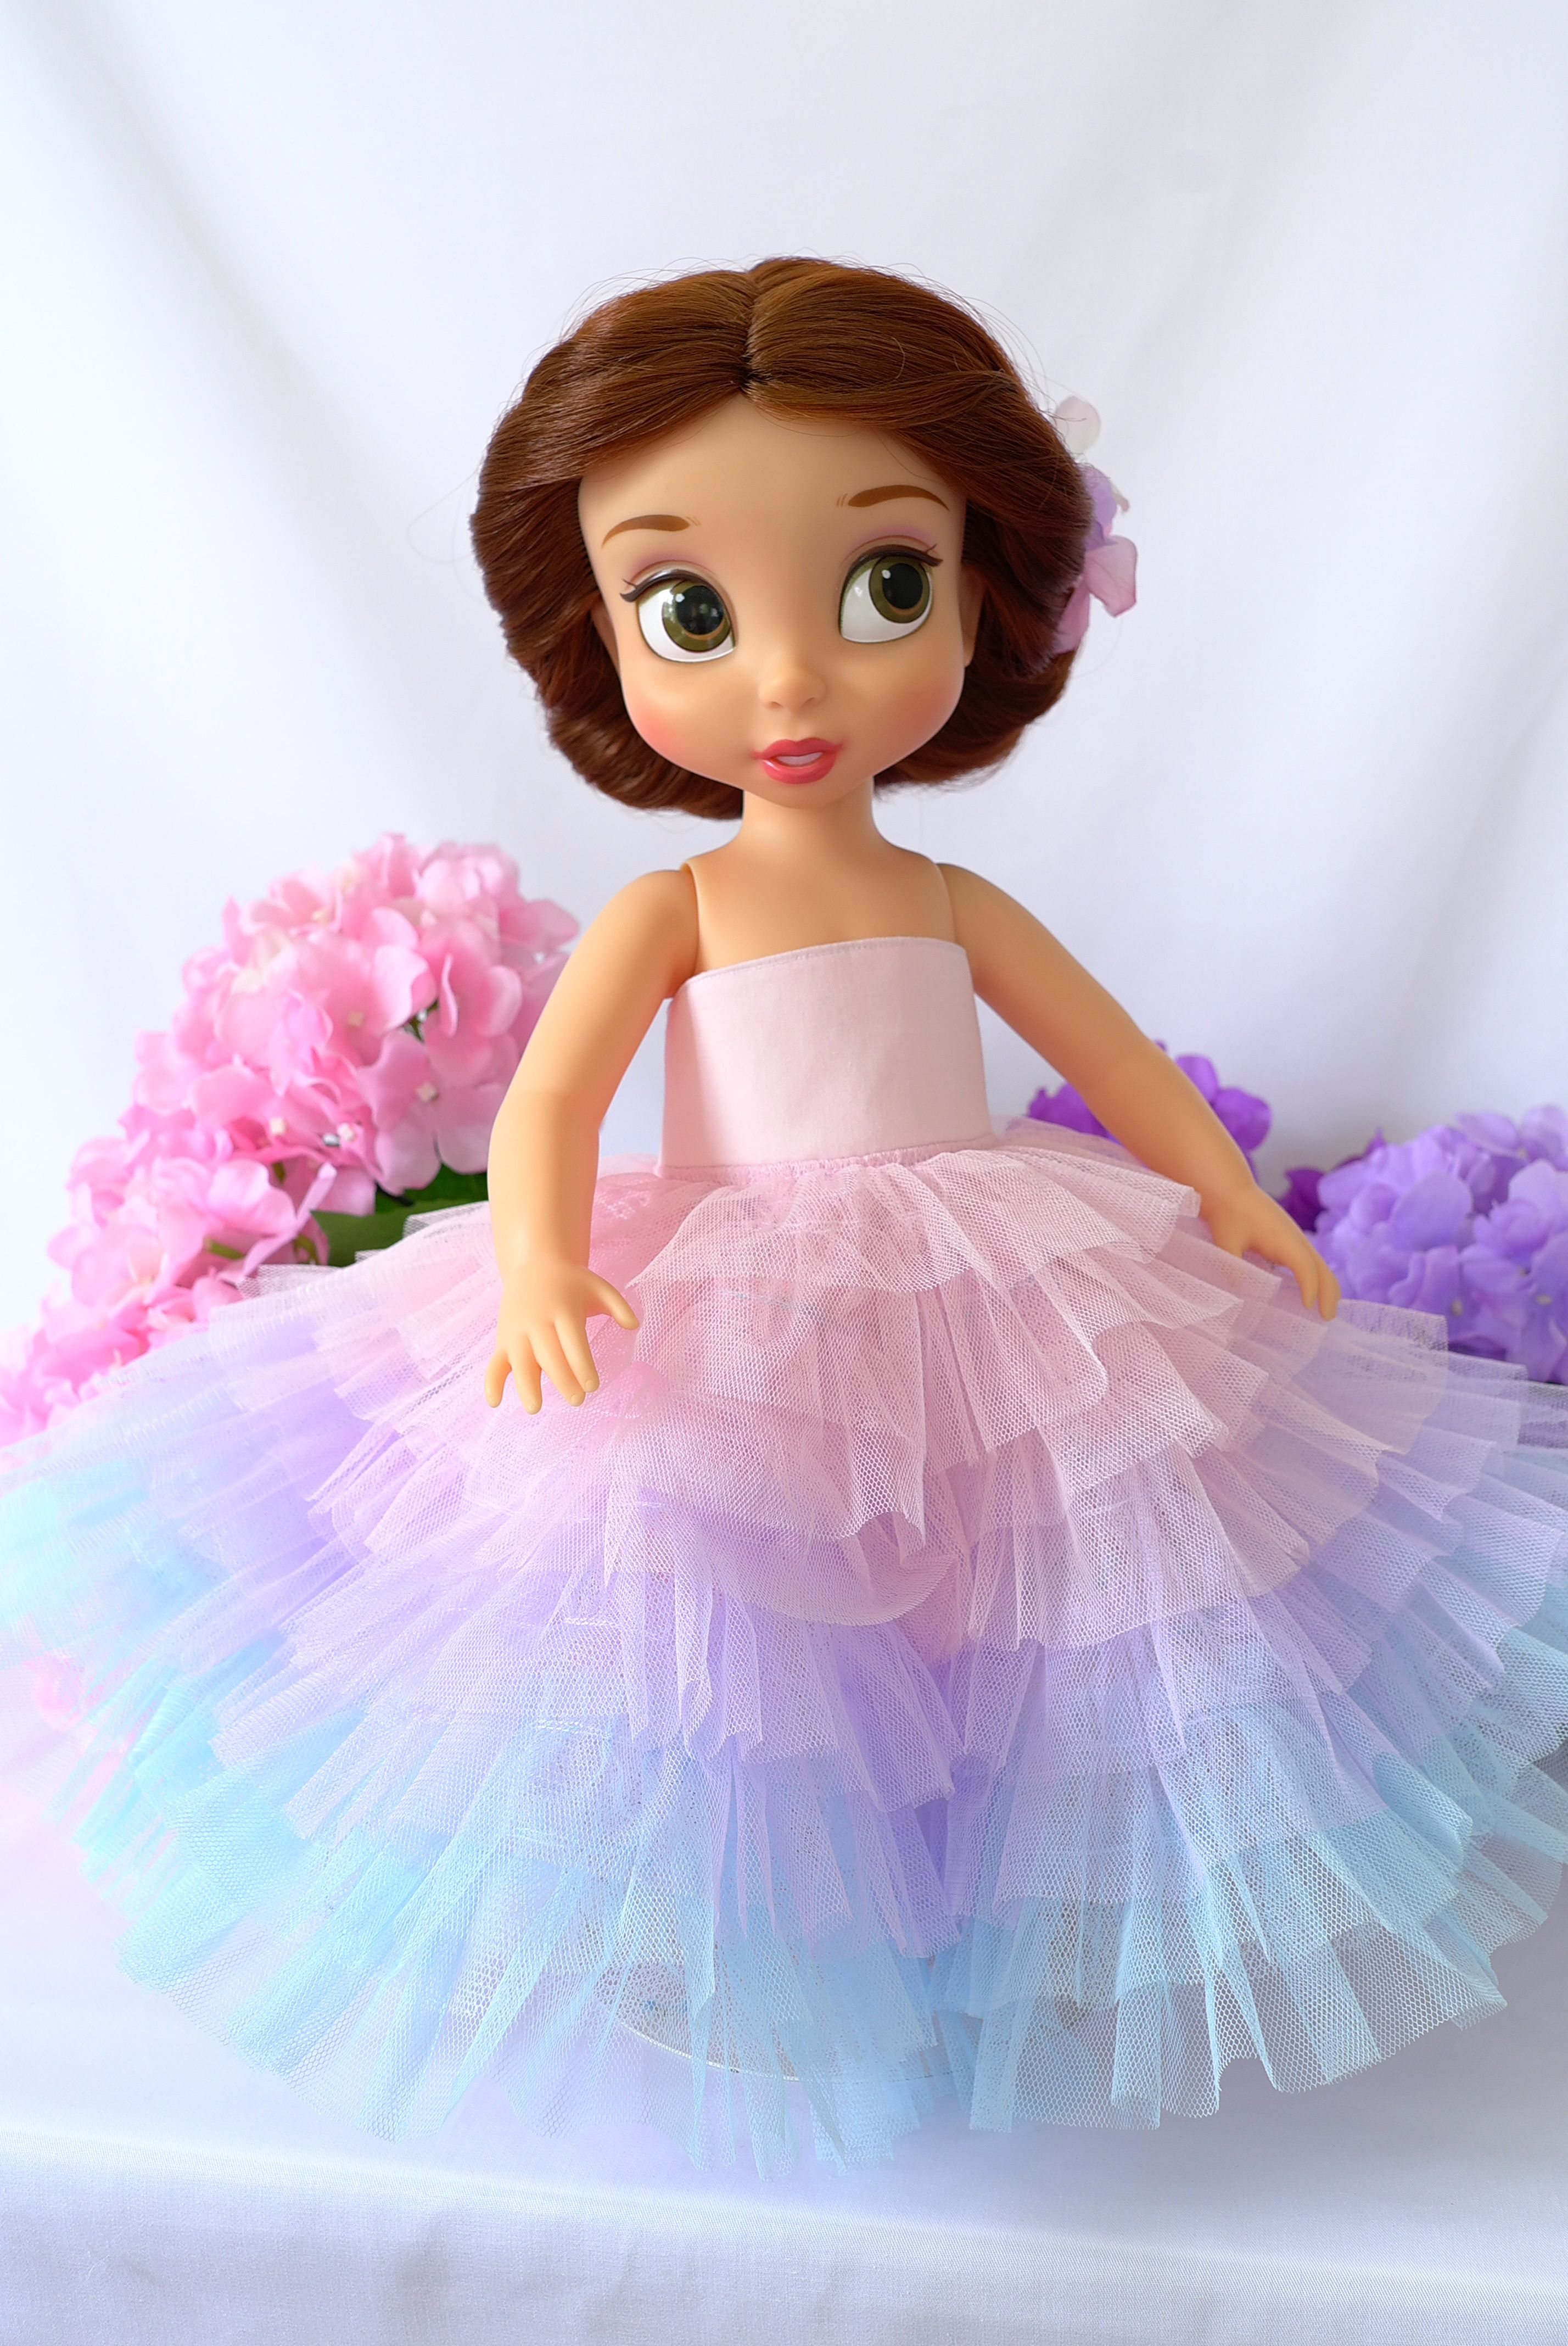 Pin by Malanedoll on Disney animator doll clothes (With